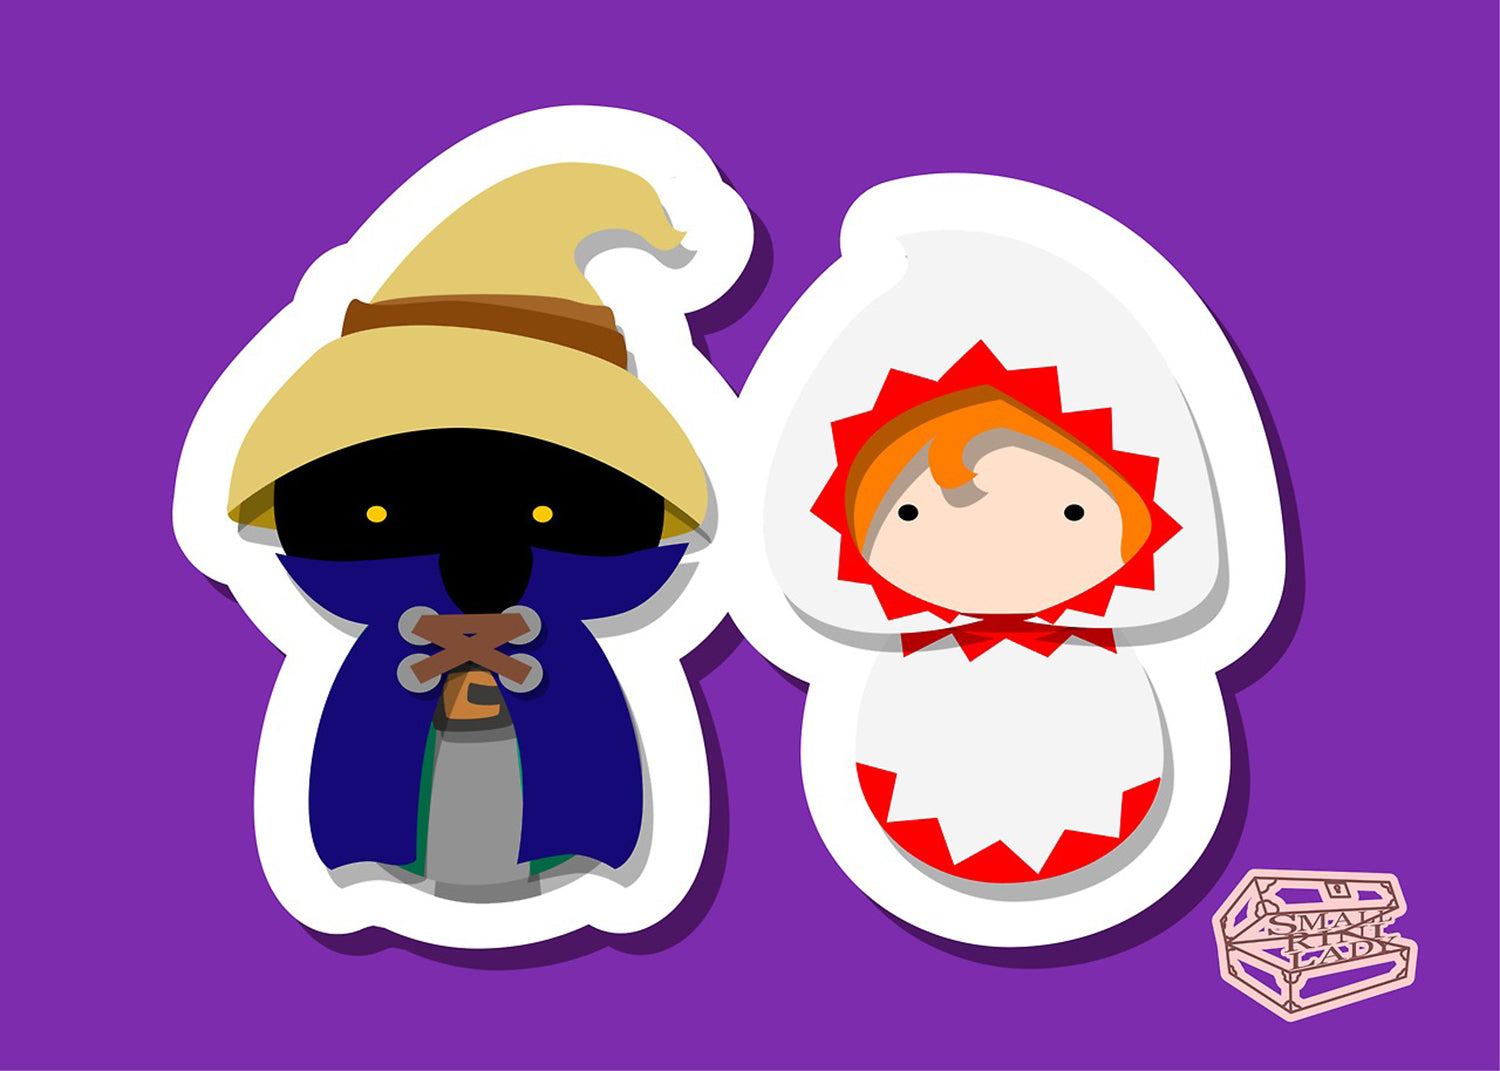 White and Black Mage, Final Fantasy Inspired - PostCard Print Kawaii Chibi Creative Kokeshi